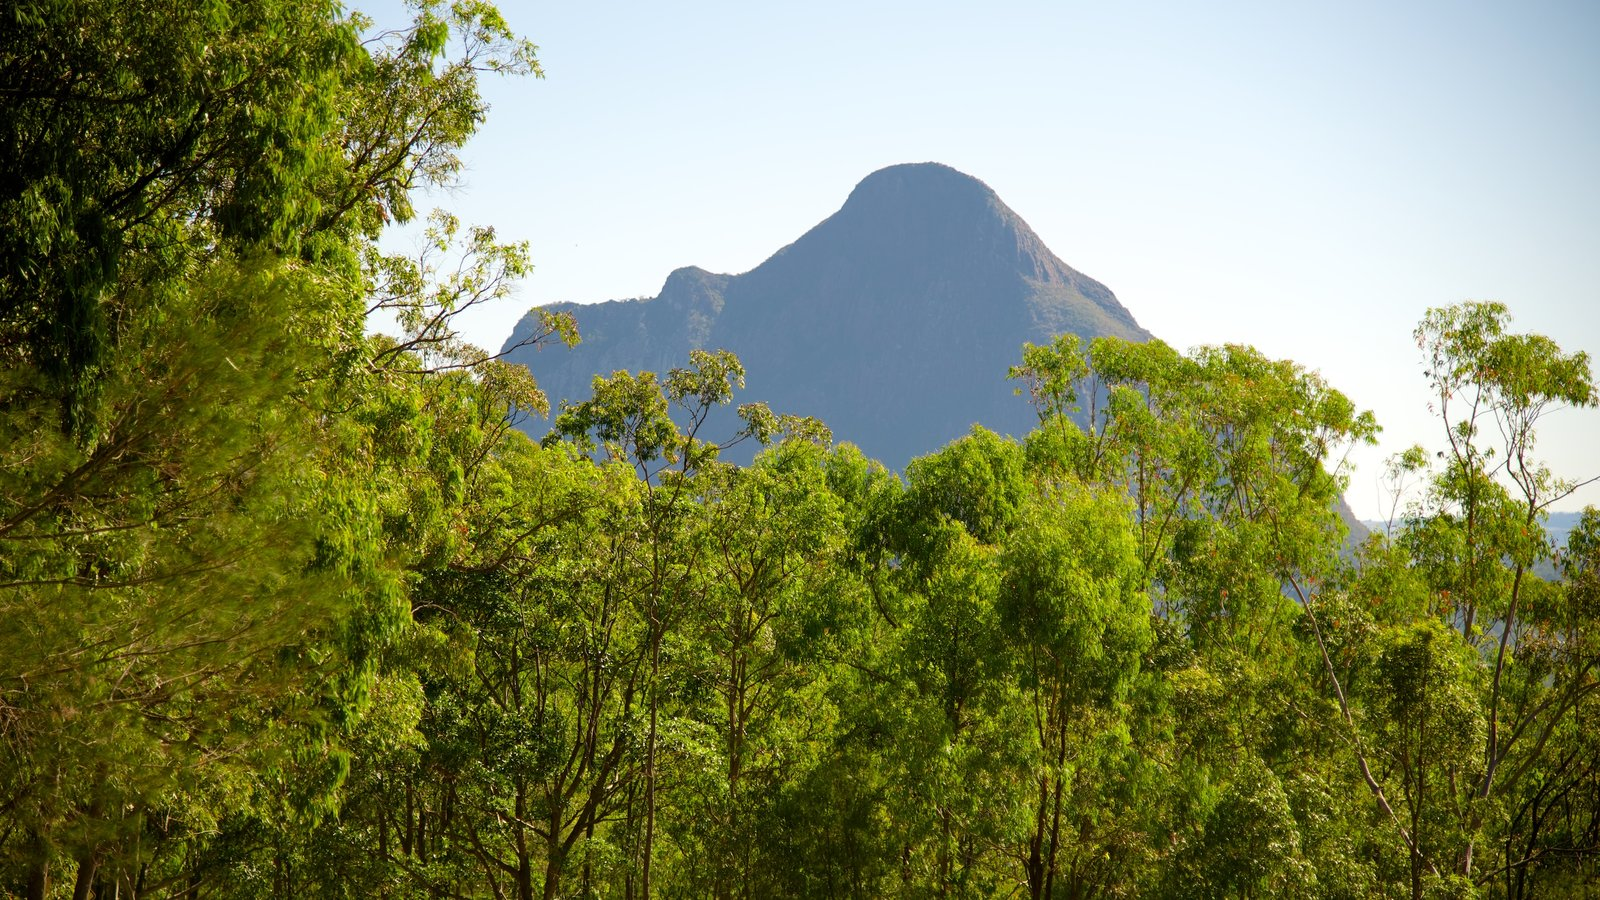 Glasshouse Mountains National Park featuring forests and mountains